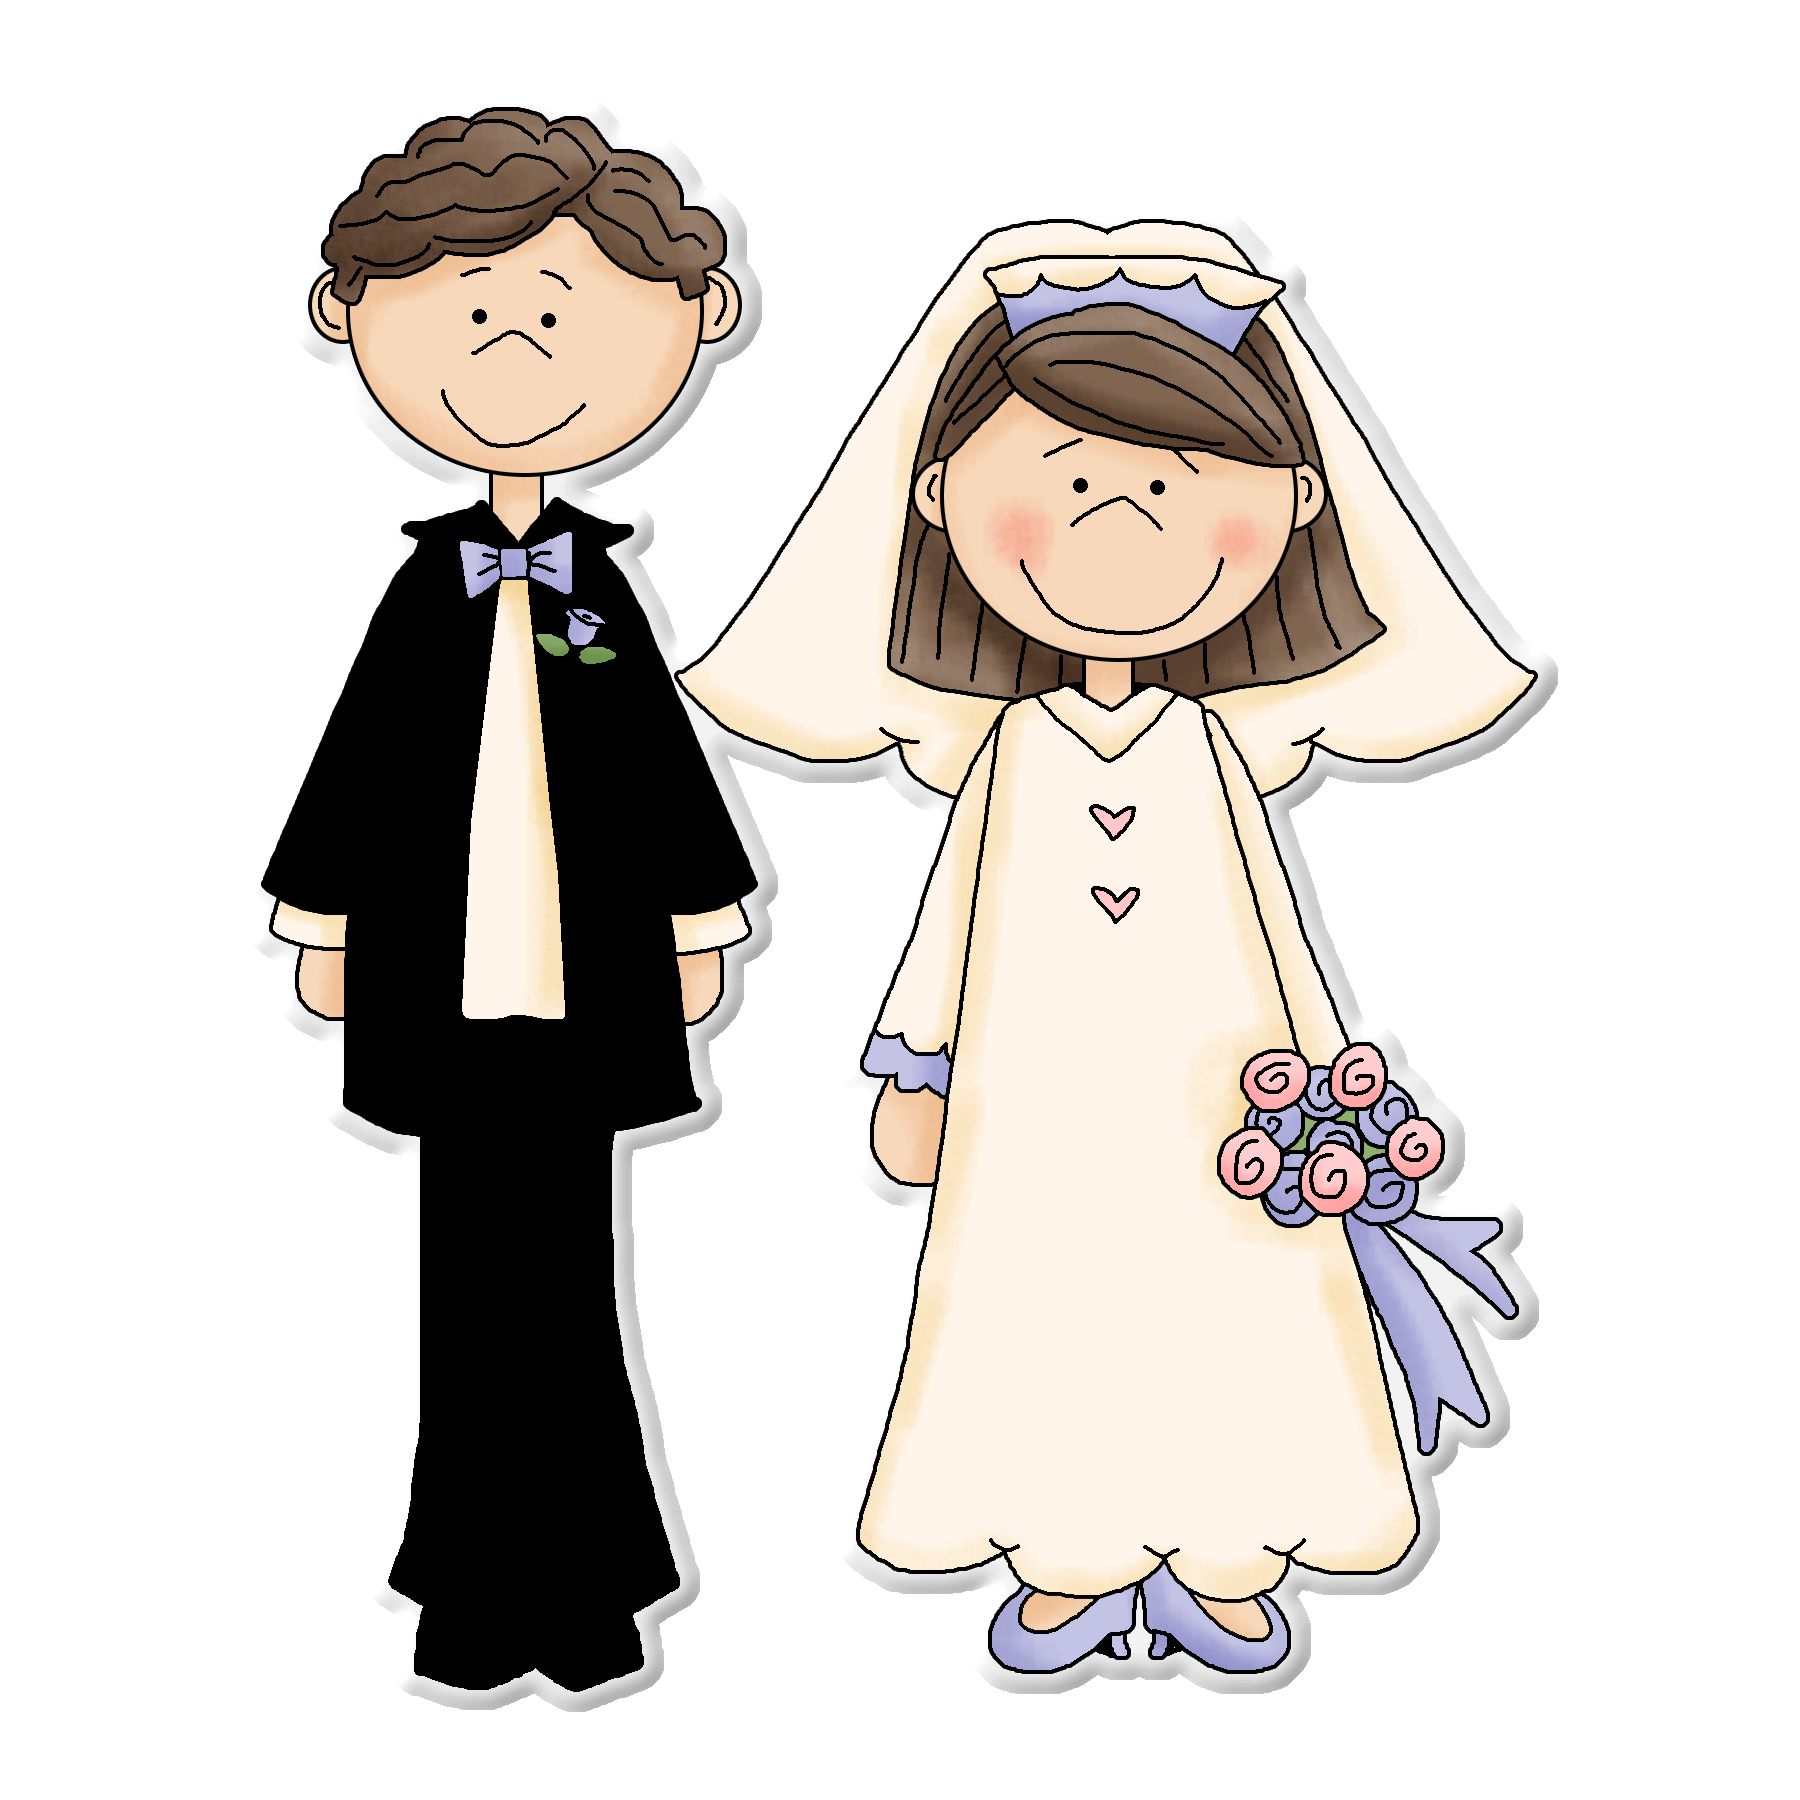 Clipart wedding family. Photo by selmabuenoaltran minus